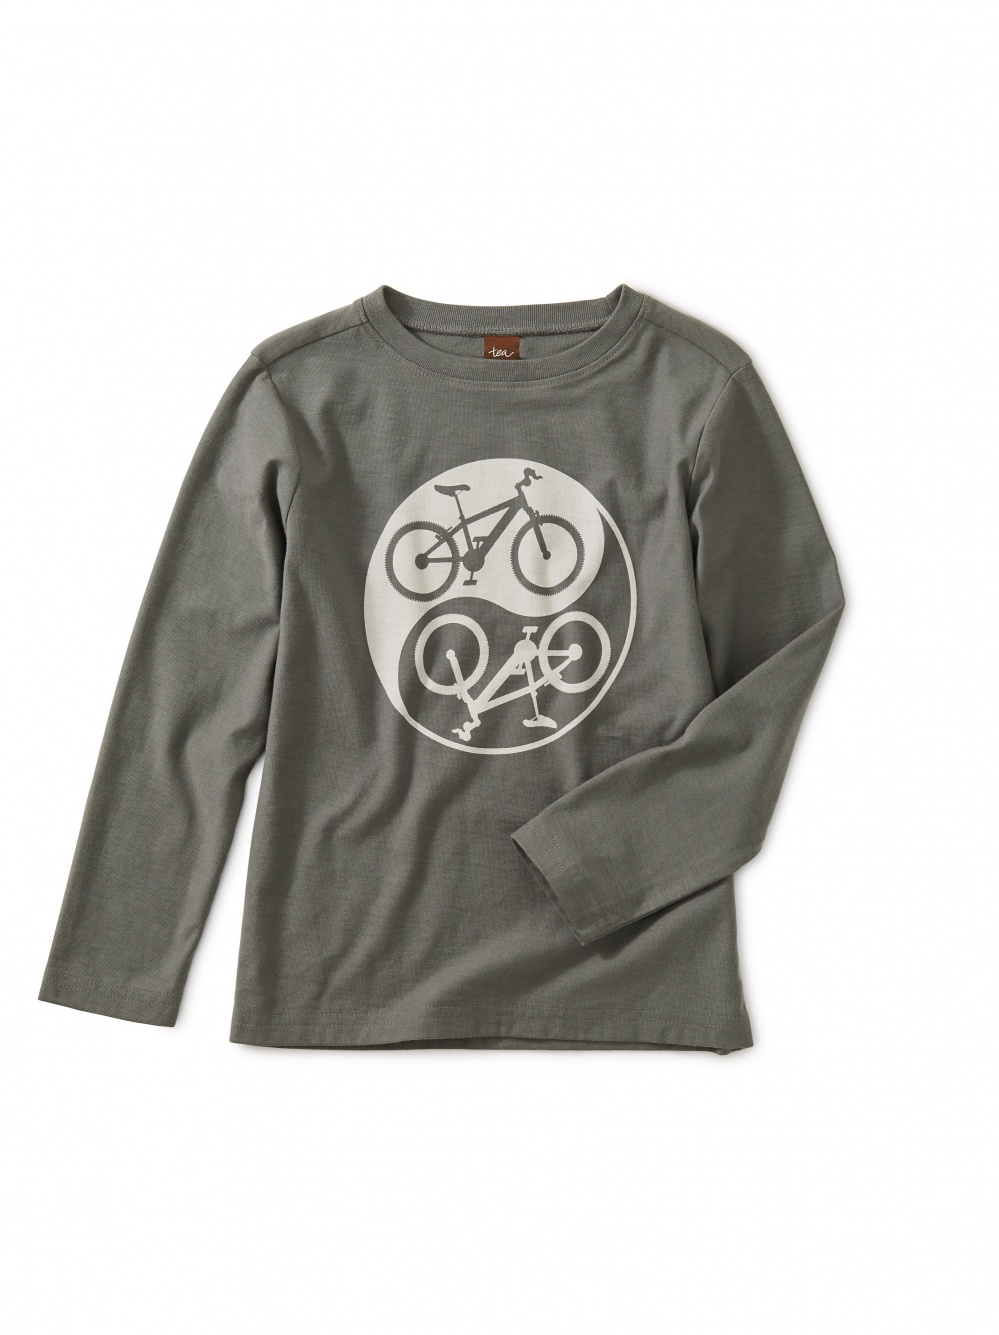 Yin Yang Bike Graphic Tee